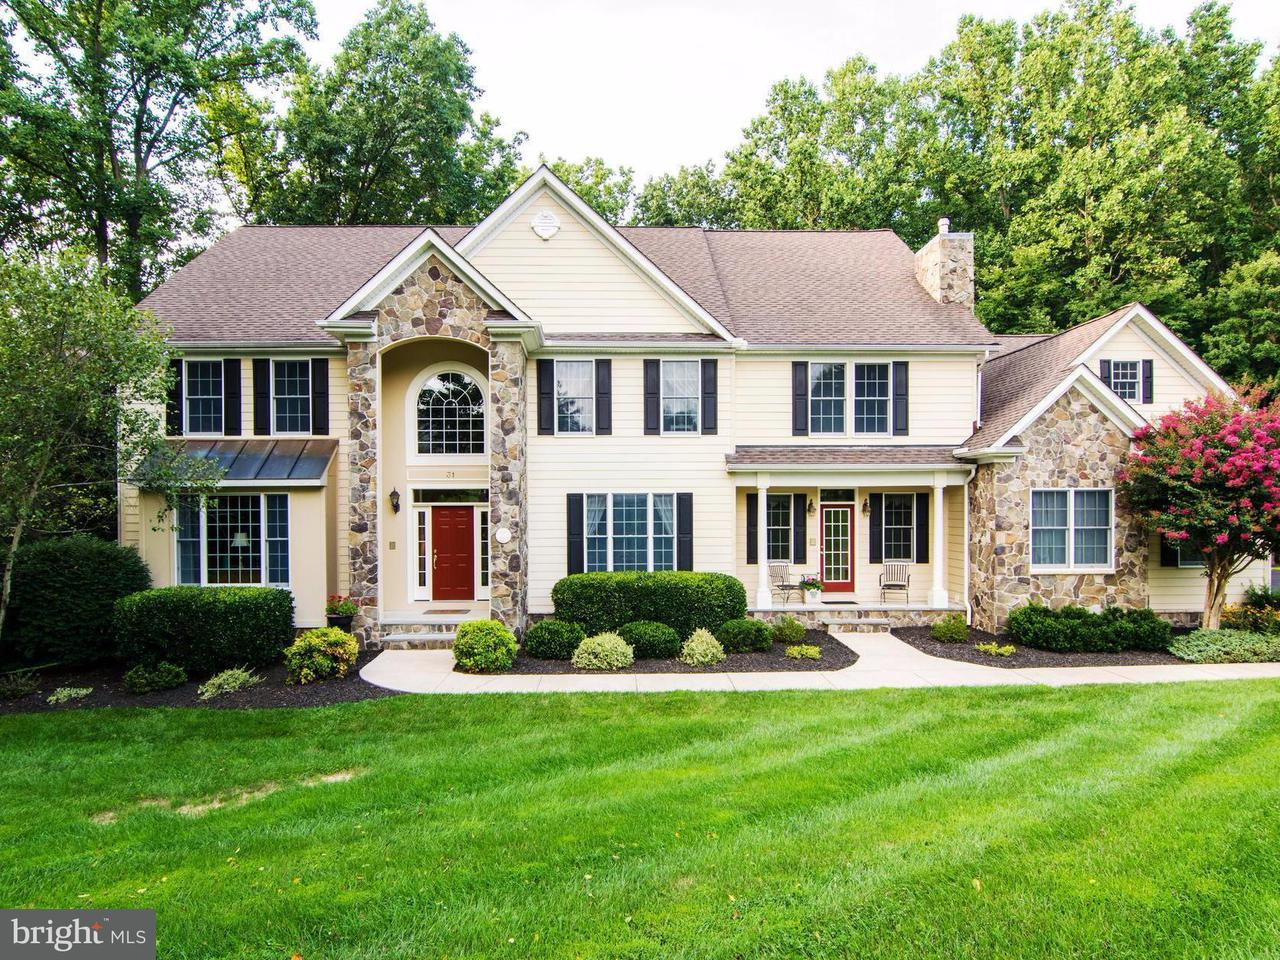 Moradia para Venda às 31 BRETT MANOR Court 31 BRETT MANOR Court Hunt Valley, Maryland 21030 Estados Unidos